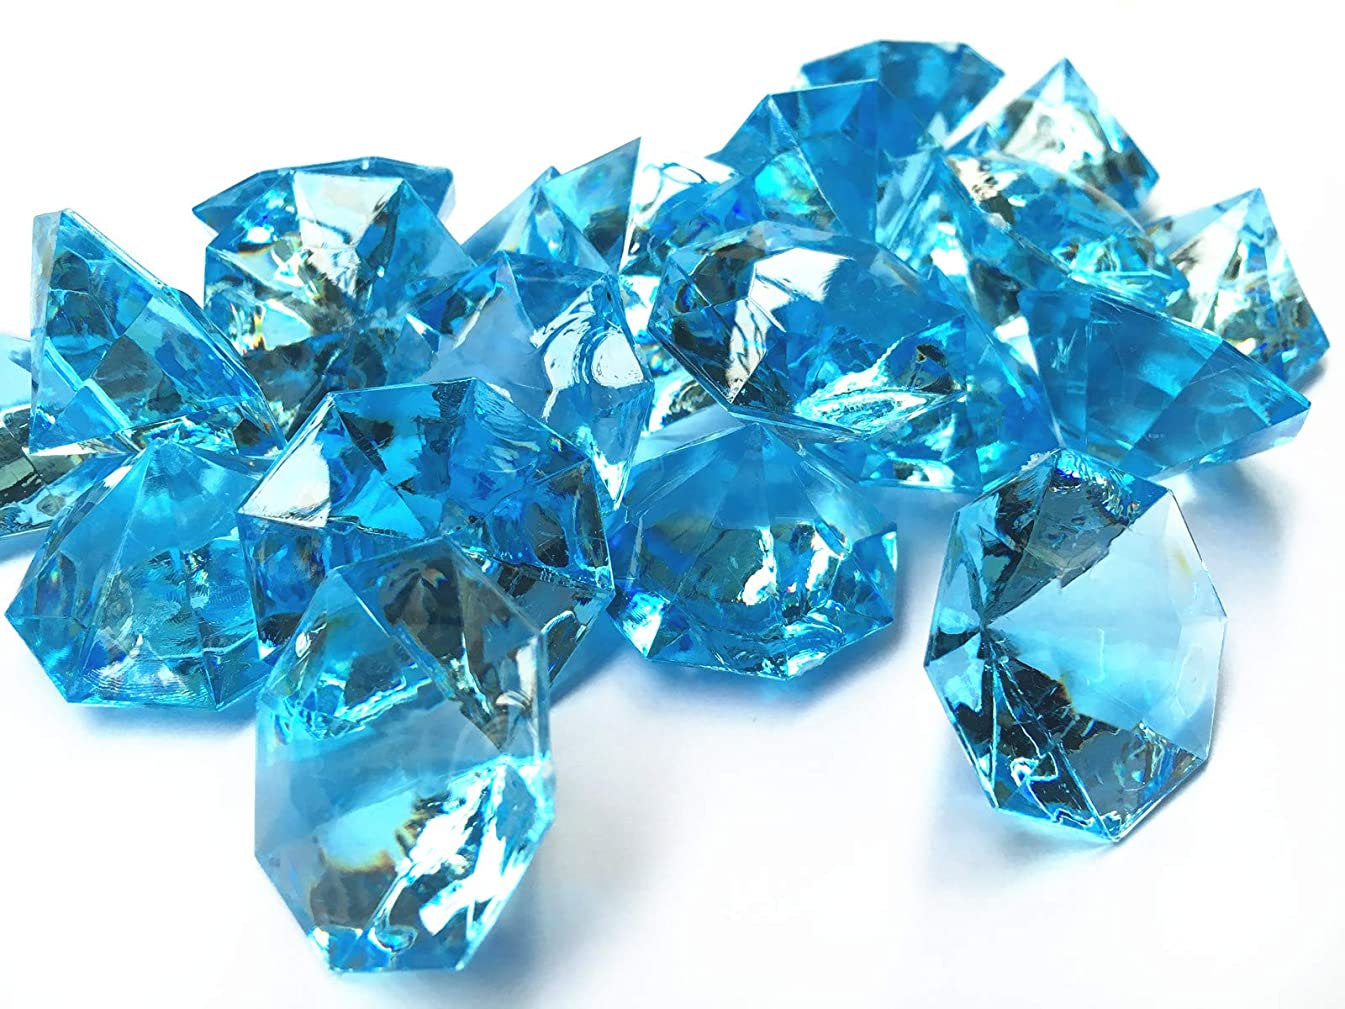 Liying Acrylic Diamond, 1.2 Inch Acrylic Colorful Round Treasure Gemstones Faux Round Confetti Diamond Crystals for Table Scatters, Vase Fillers, Party Decoration, Pack of 35 Pcs (Aqua Blue)